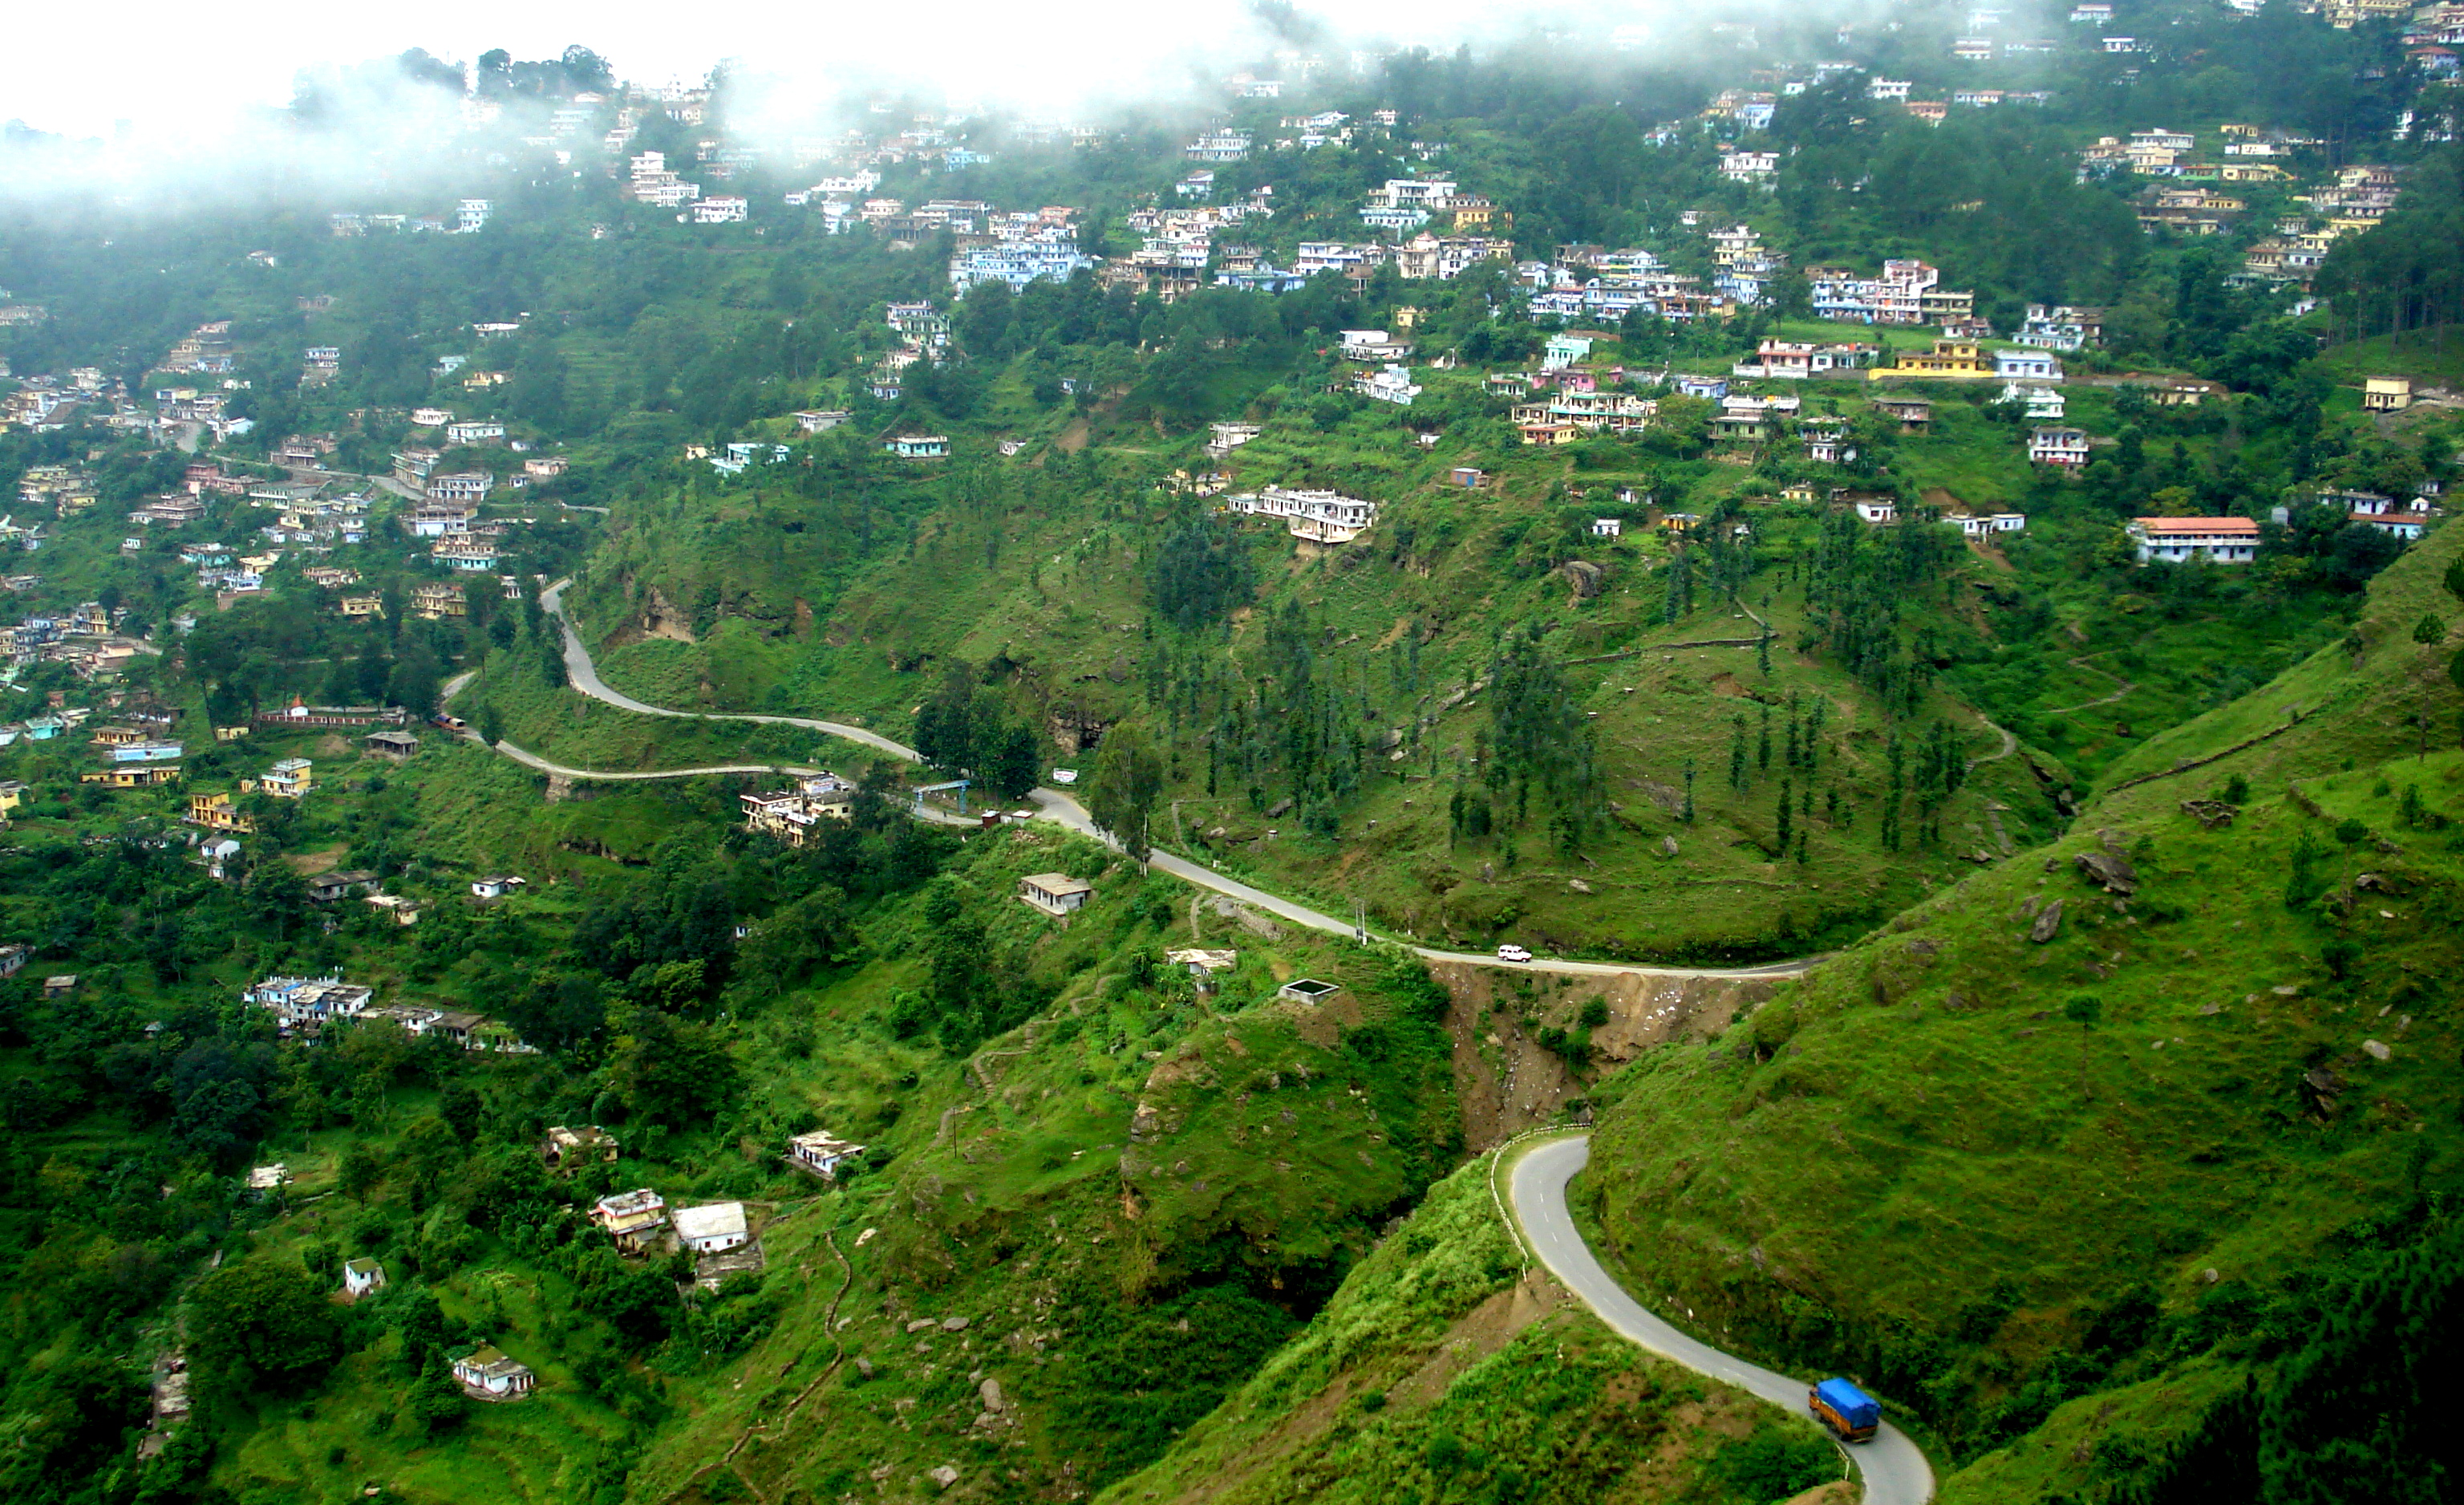 Almora, Uttranchal, India